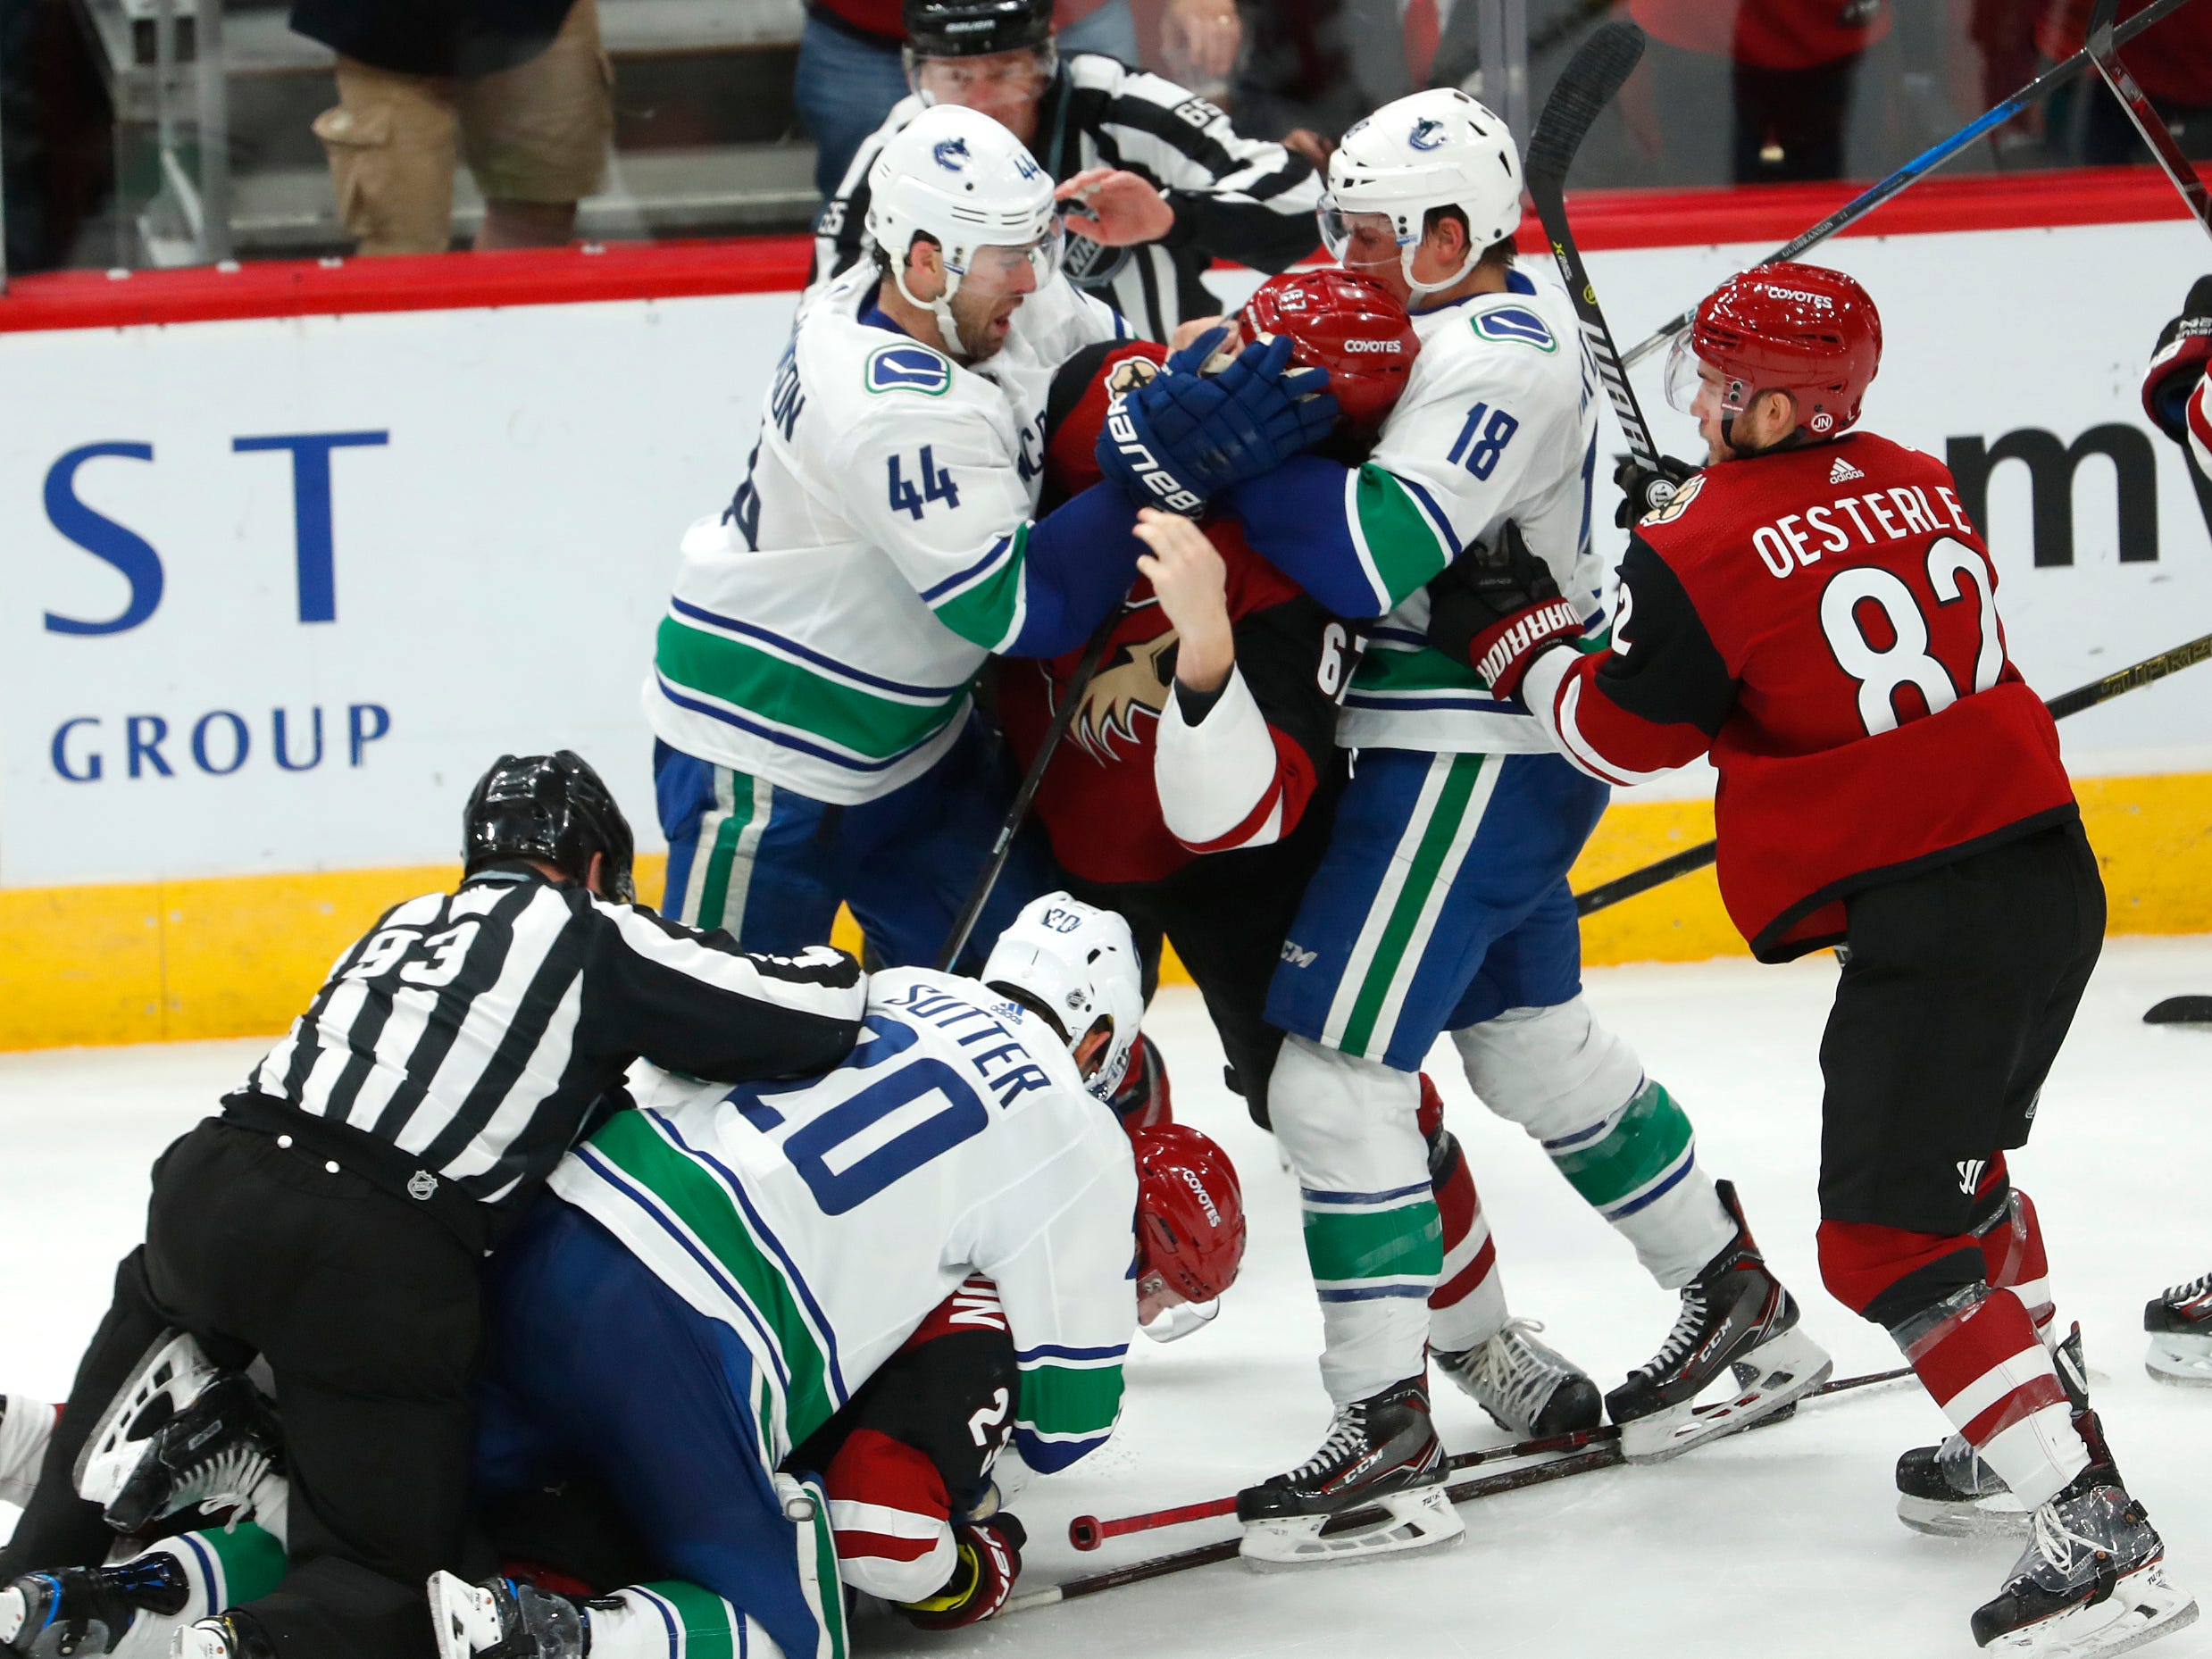 Canucks' Erik Gudbranson (44) and Jake Virtanen (18) grab Coyotes' Lawson Crouse (67) by the face as an official tries to pull Canucks' Brandon Sutter (20) off of Coyotes' Oliver Ekman-Larsson (23) during the second period at Gila River Arena in Glendale, Ariz. on October 25, 2018.